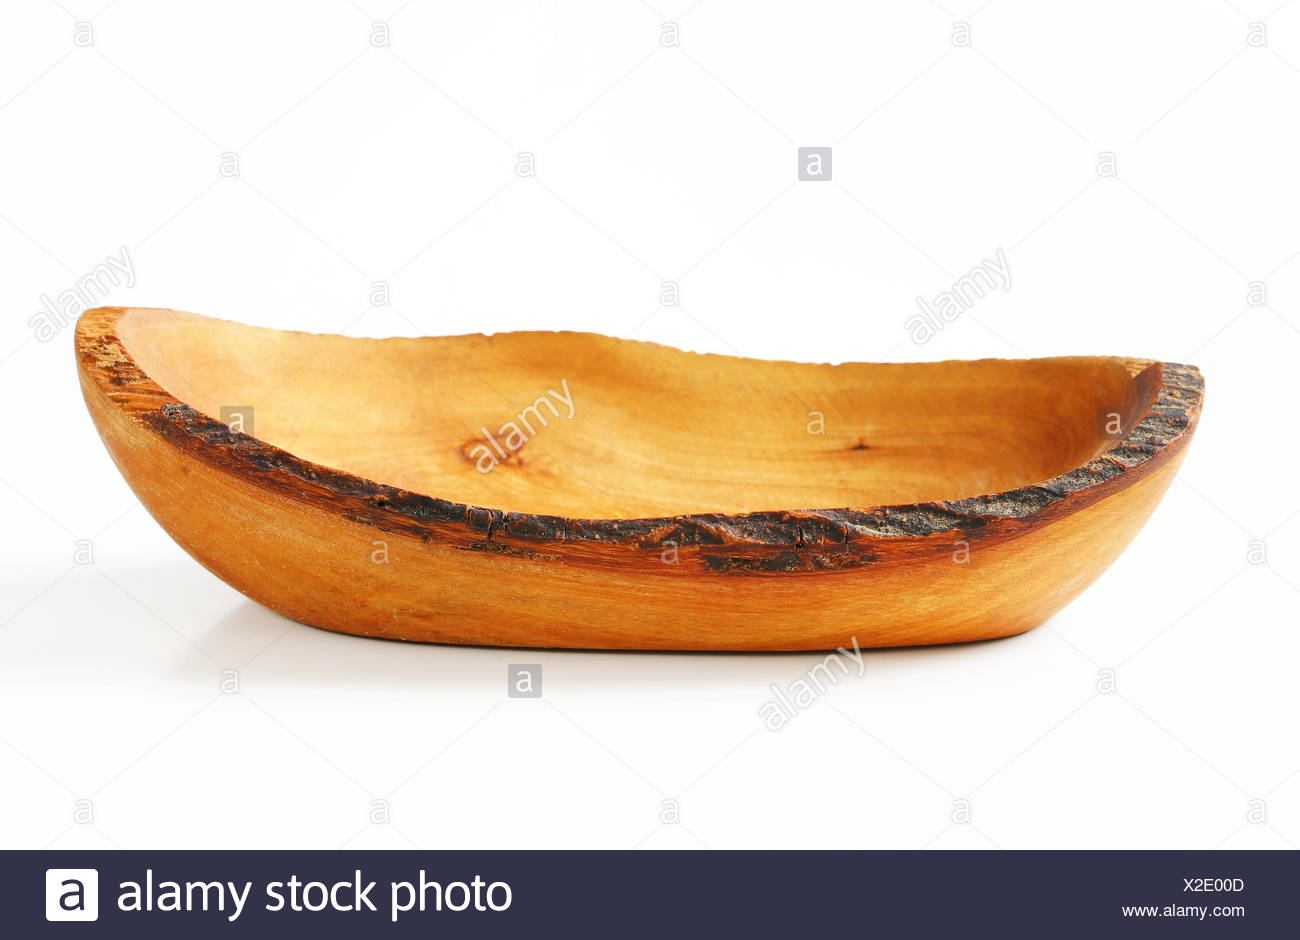 Olive wood boat-shaped rustic bowl Stock Photo